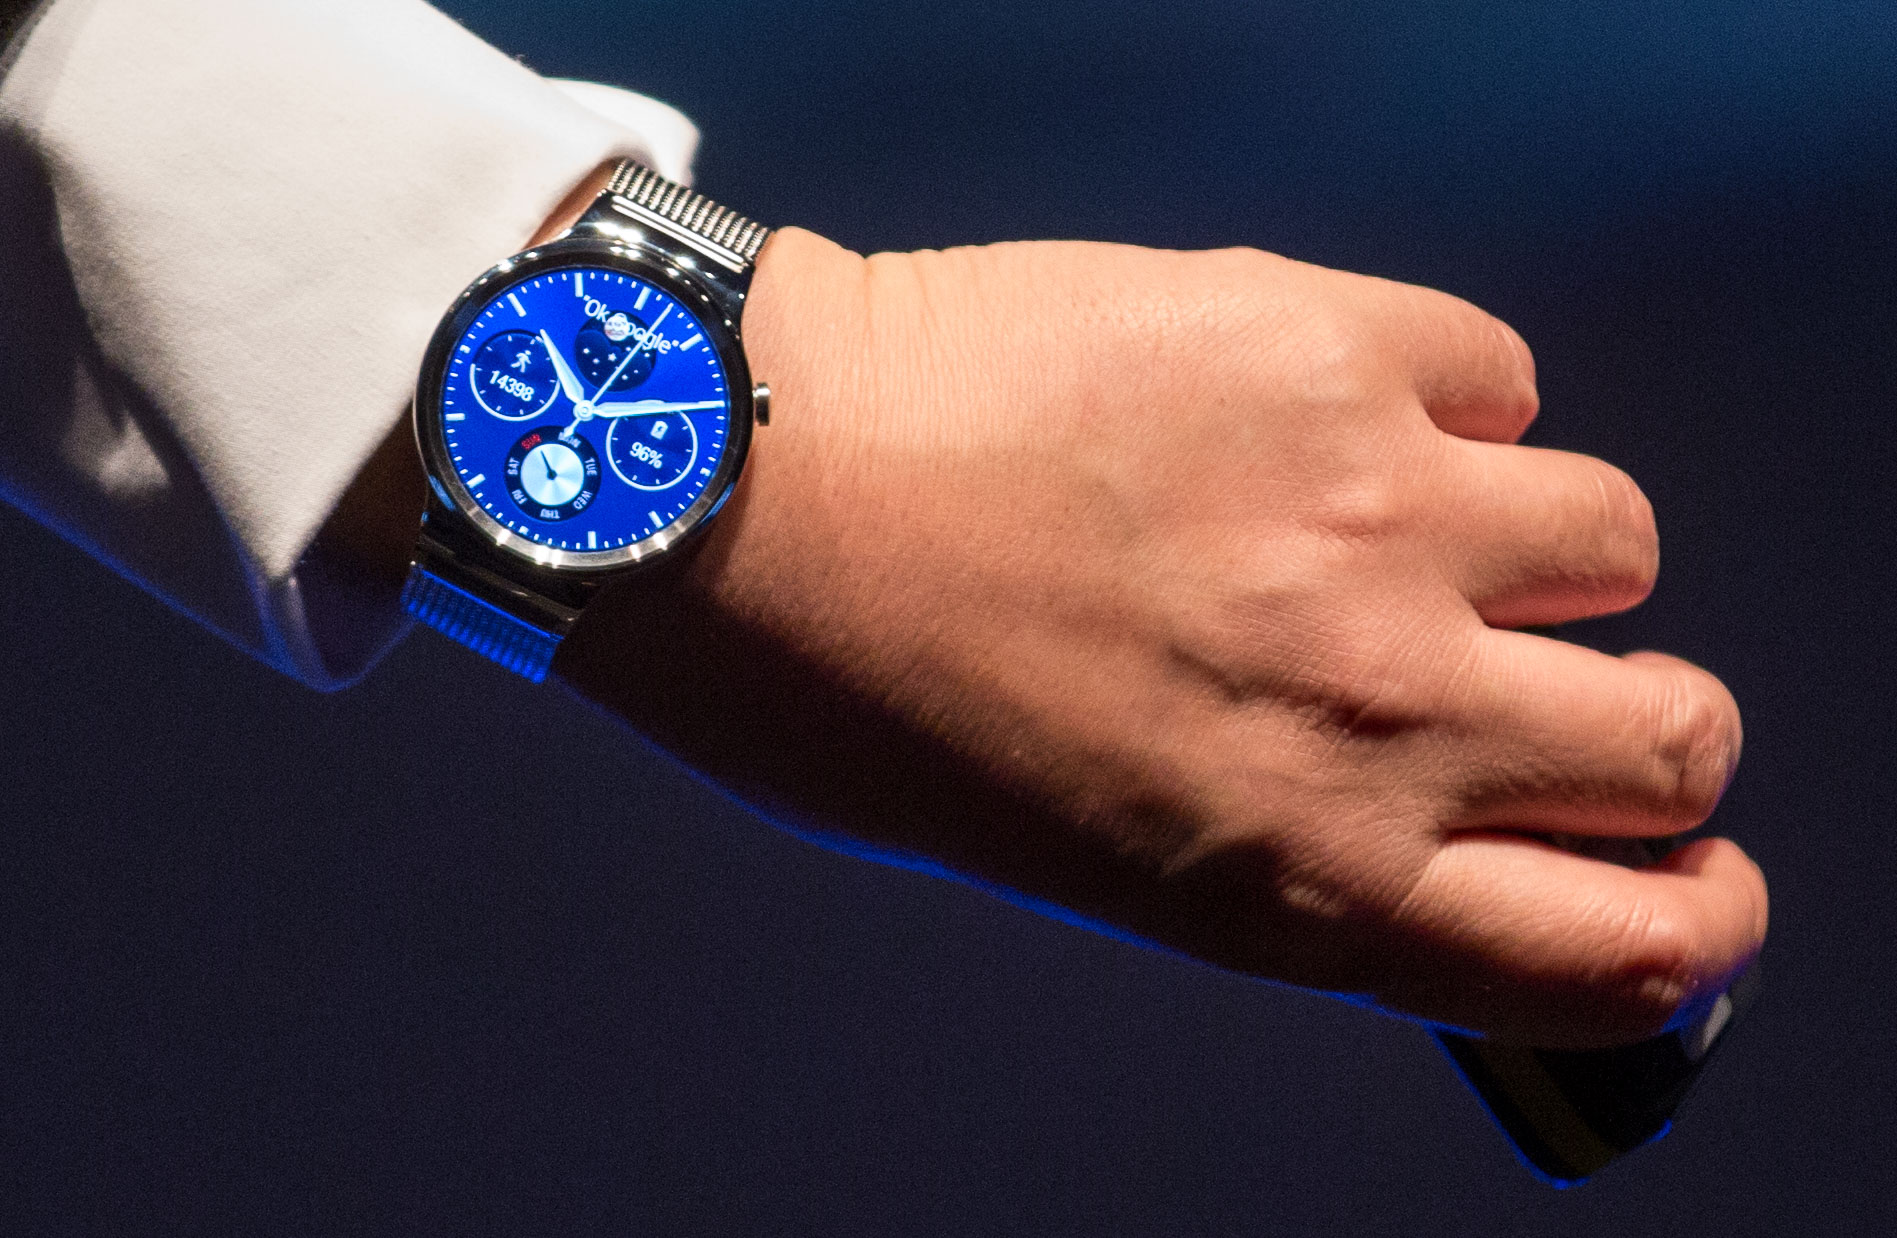 The Android-powered Huawei Watch is designed to bring a more classical look to the smartphone market.